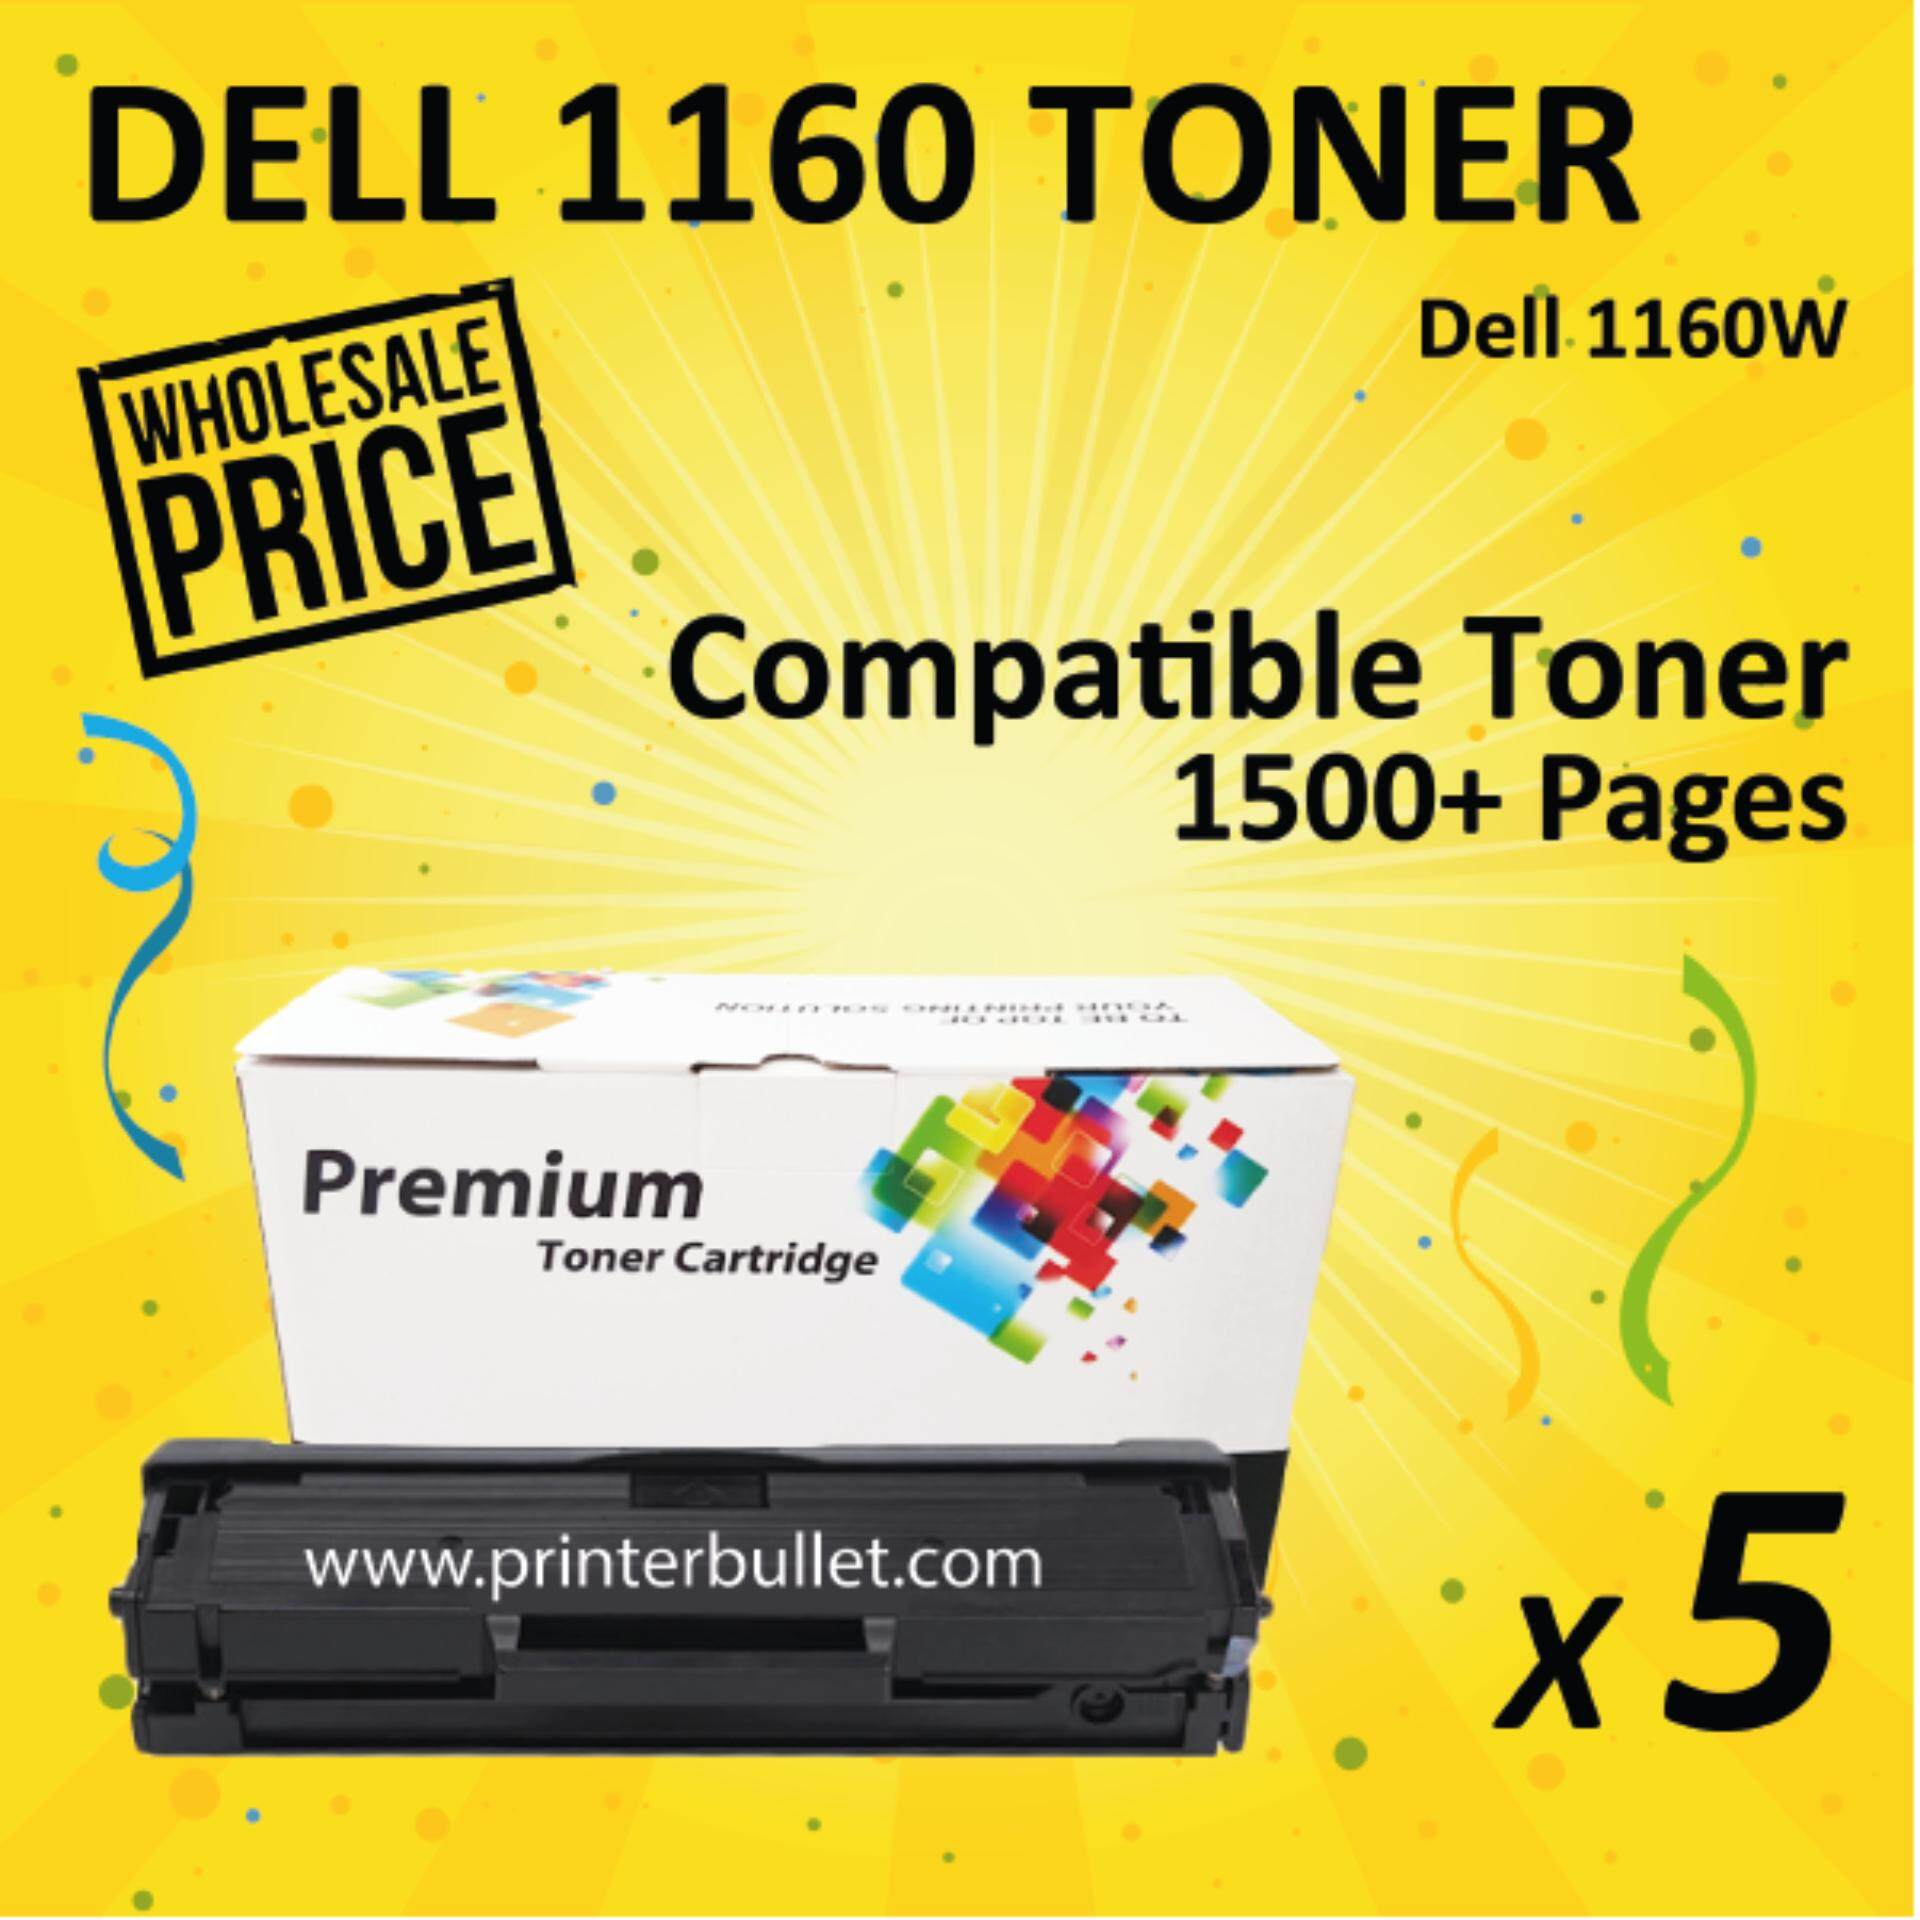 5 unit Dell B1160 / B1160w / B1163 / B1163w / B1165 / B1165nfw Compatible Laser Toner Cartridge